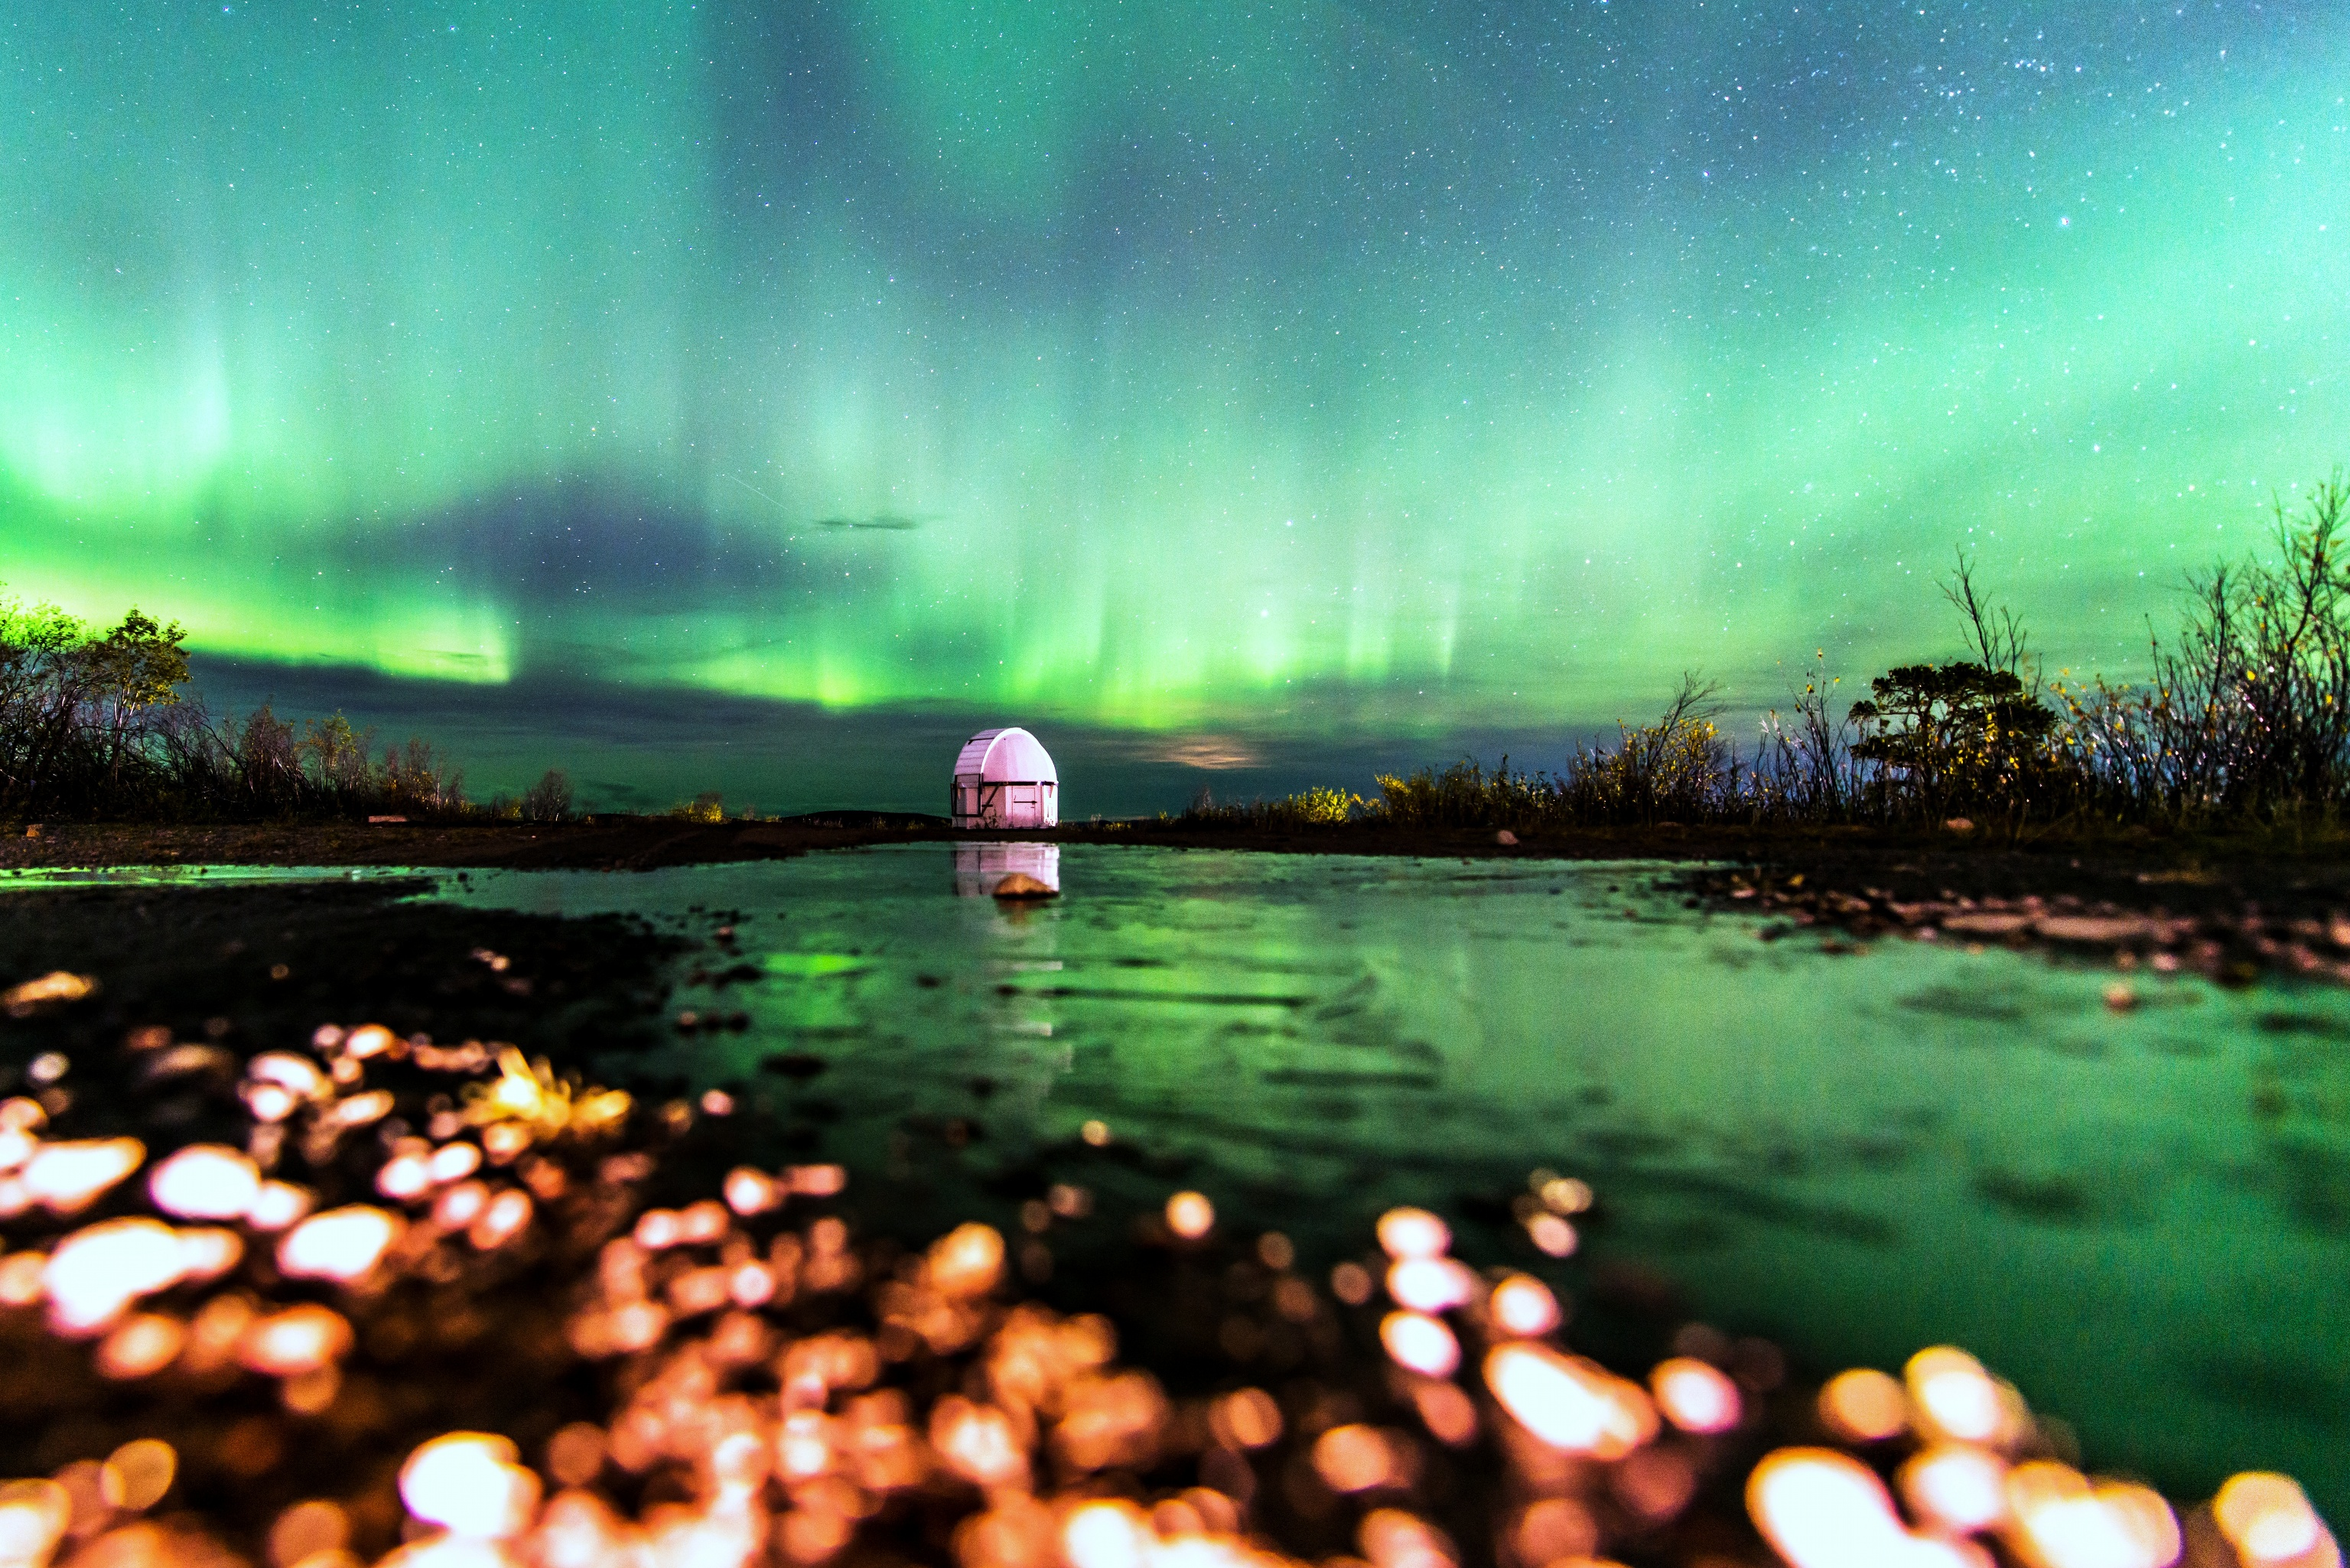 Aurora: The Frog's View